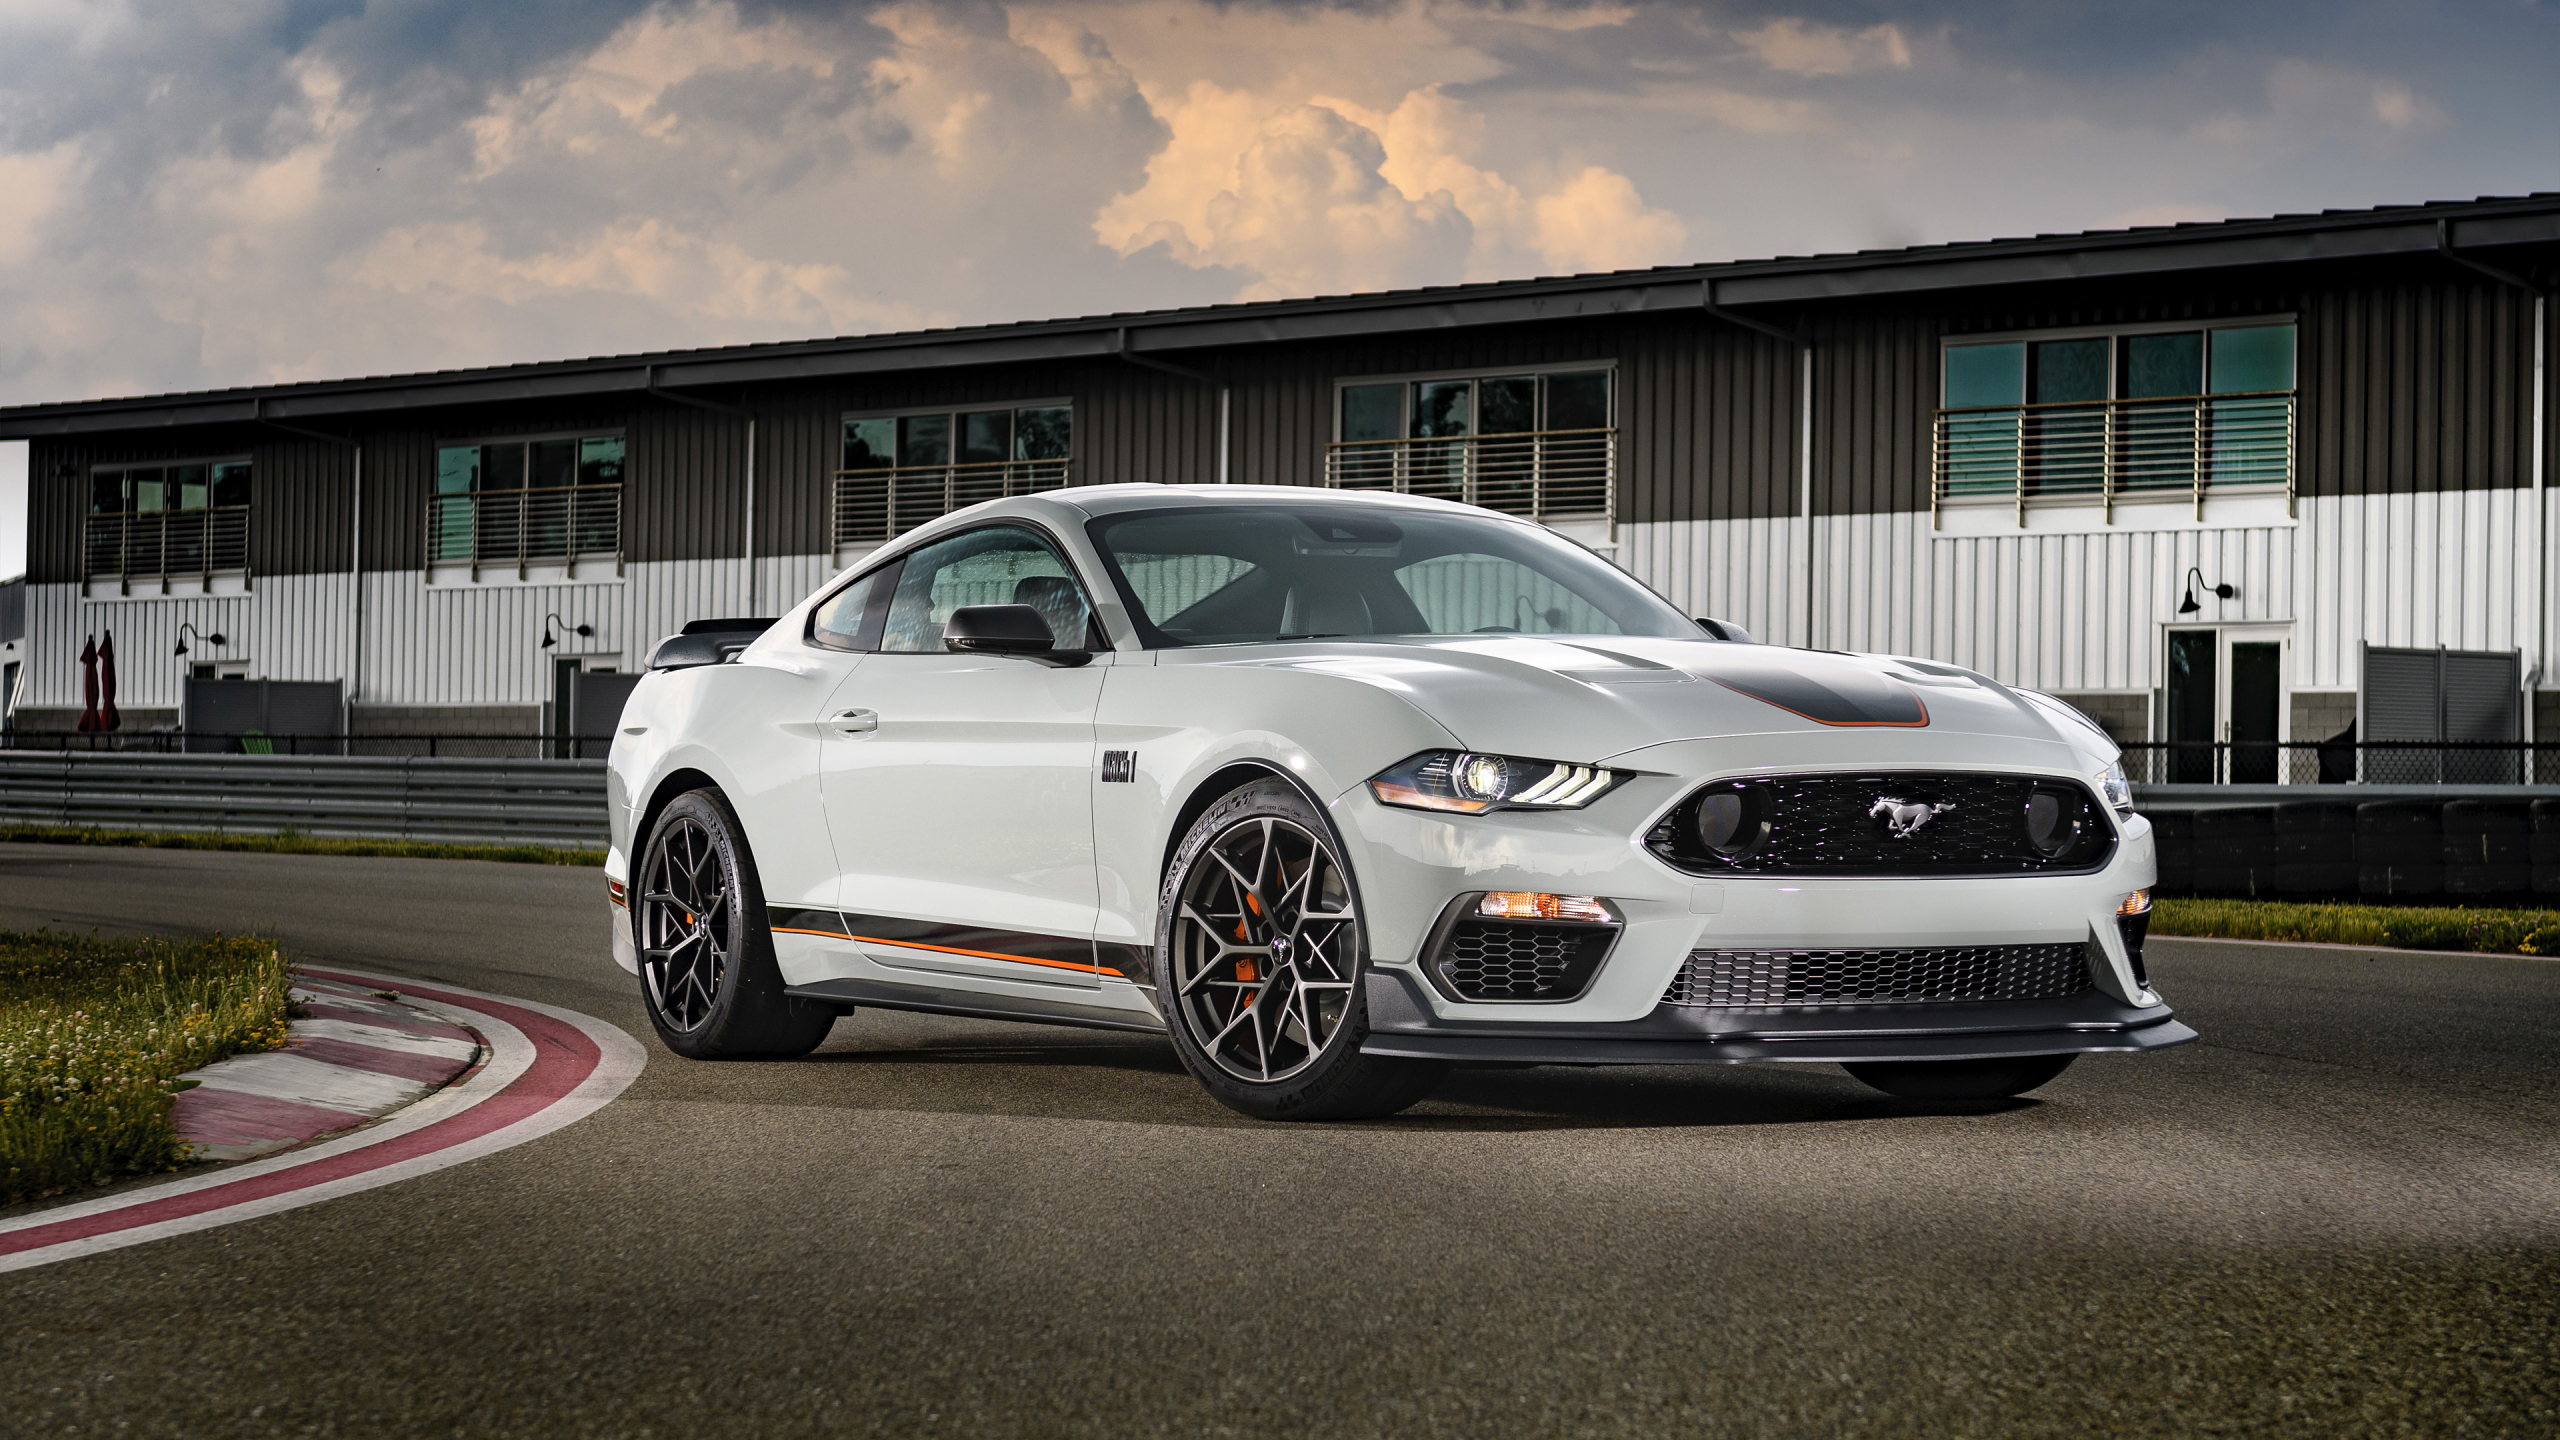 2560x1440 Ford Mustang 2021 1440p Resolution Wallpaper Hd Cars 4k Wallpapers Images Photos And Background Wallpapers Den